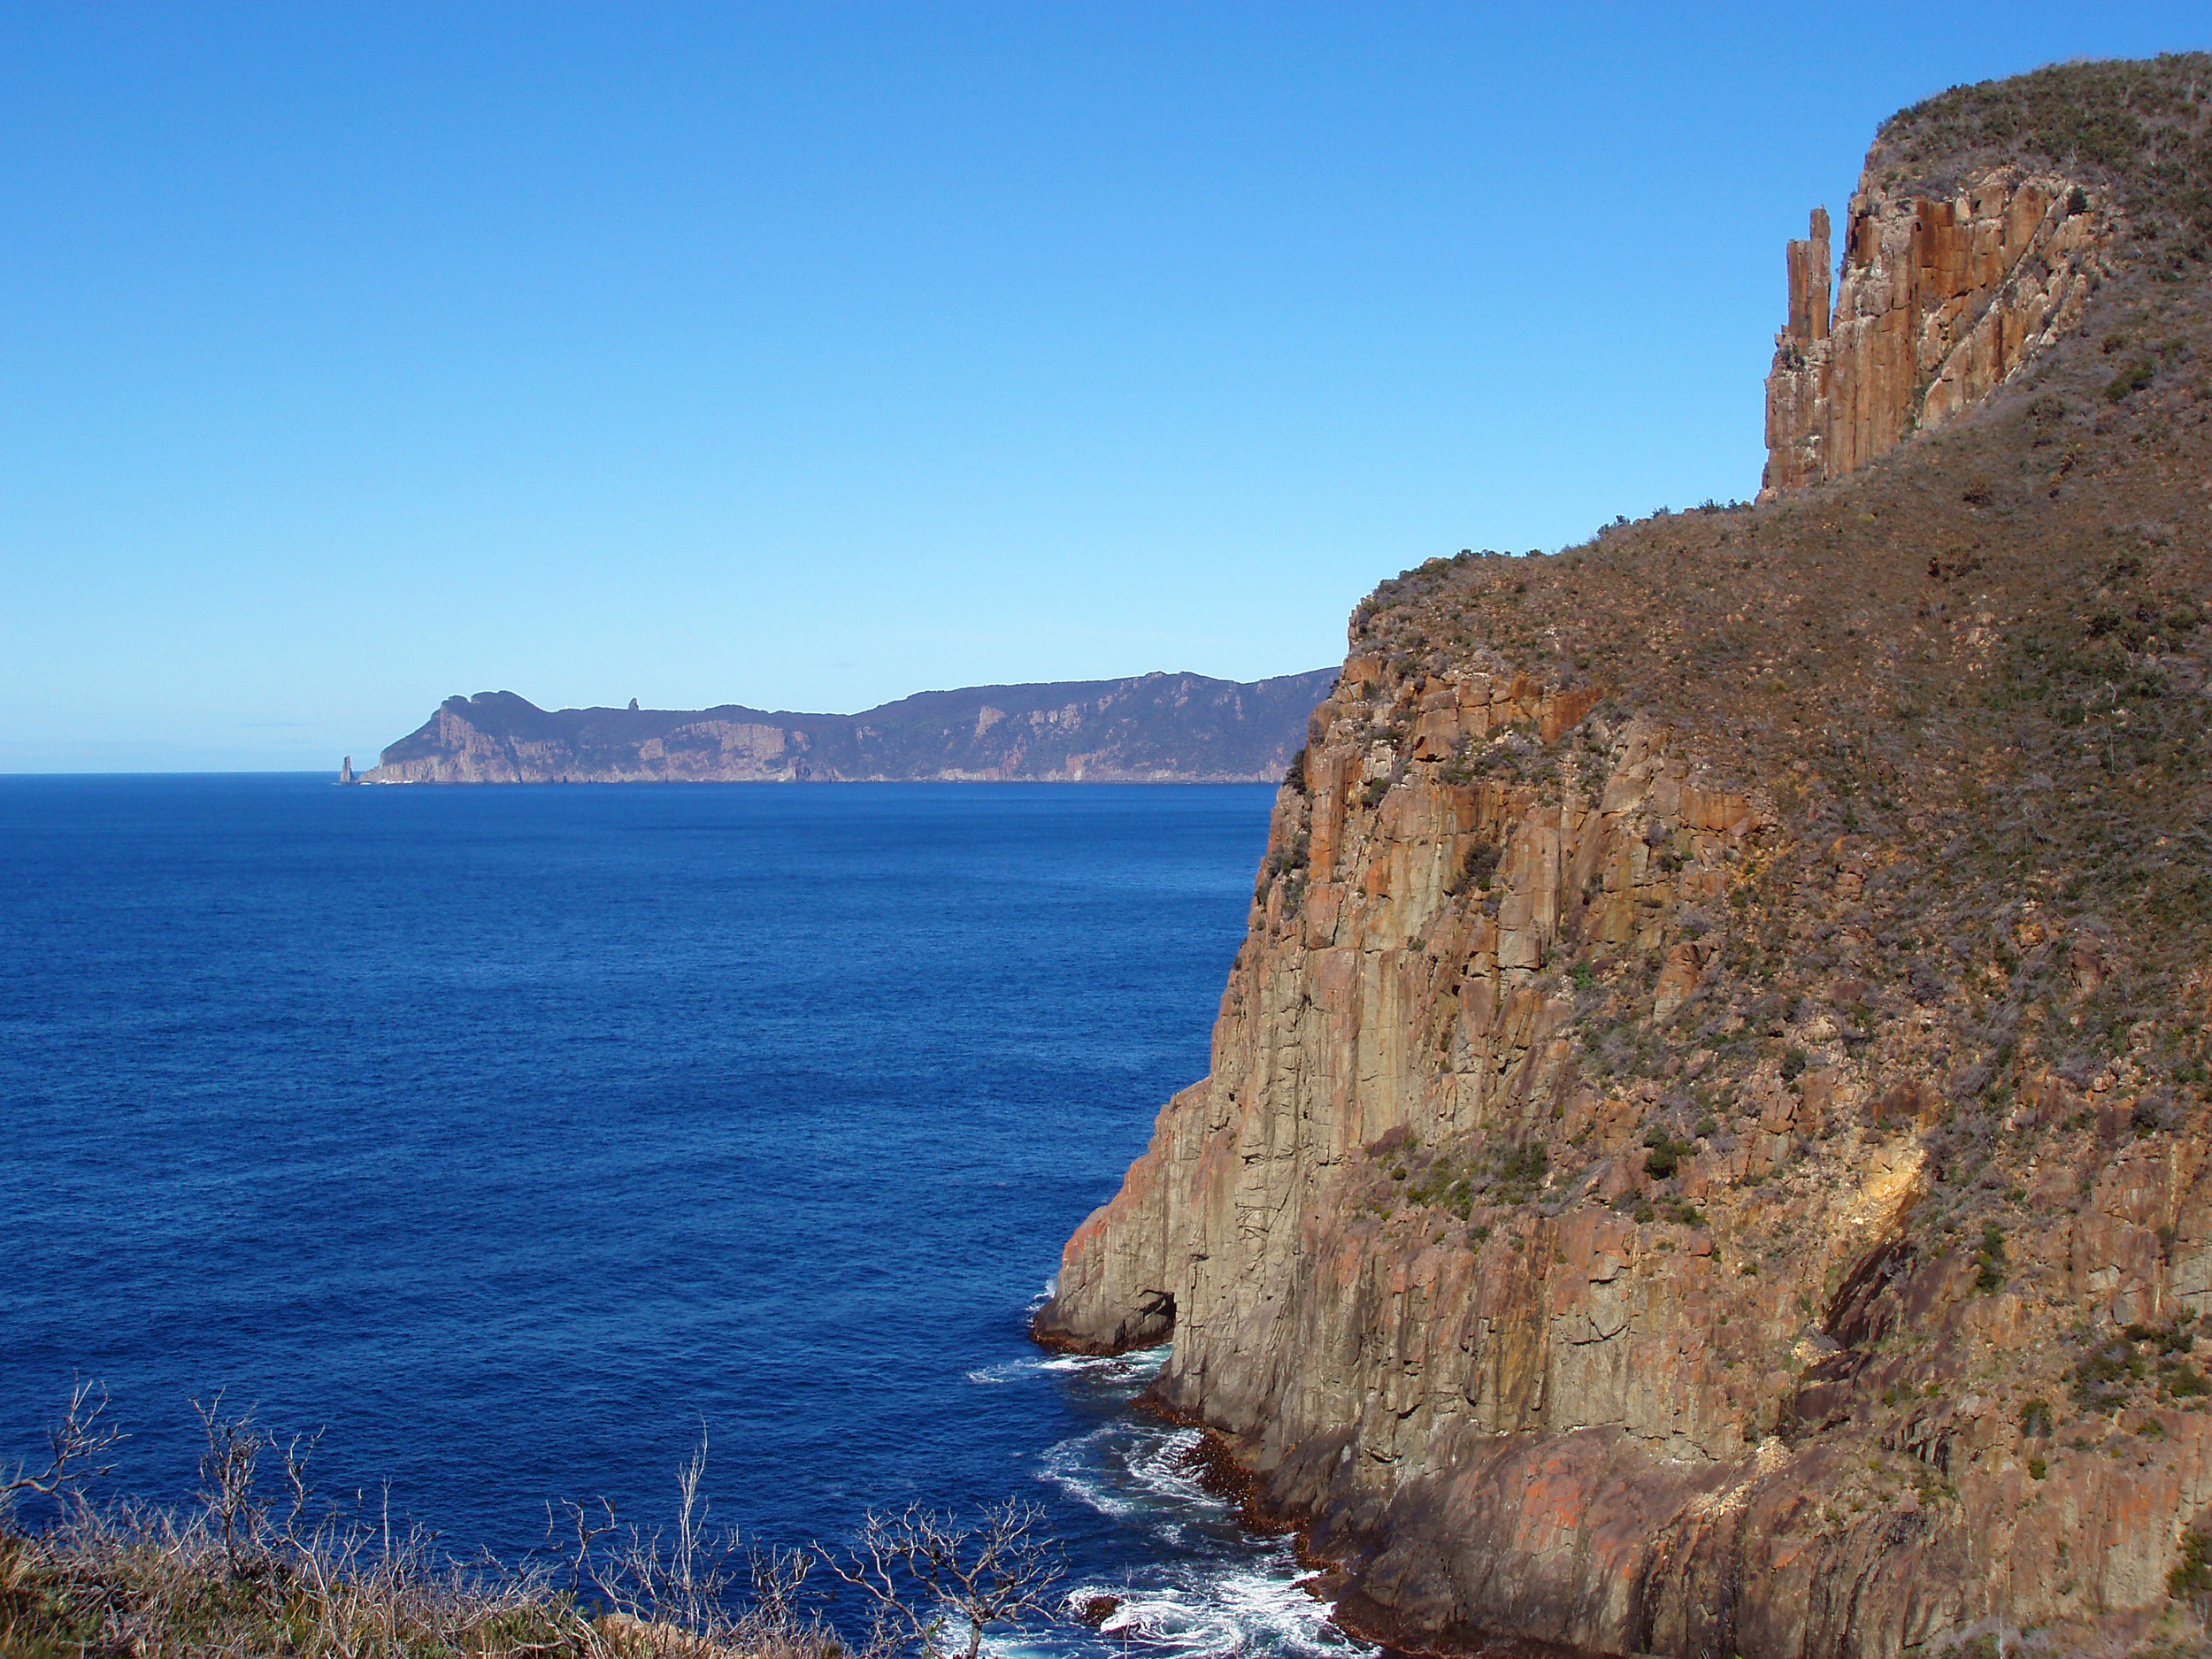 a view of Cape pillar in the distance from Cape Hauy